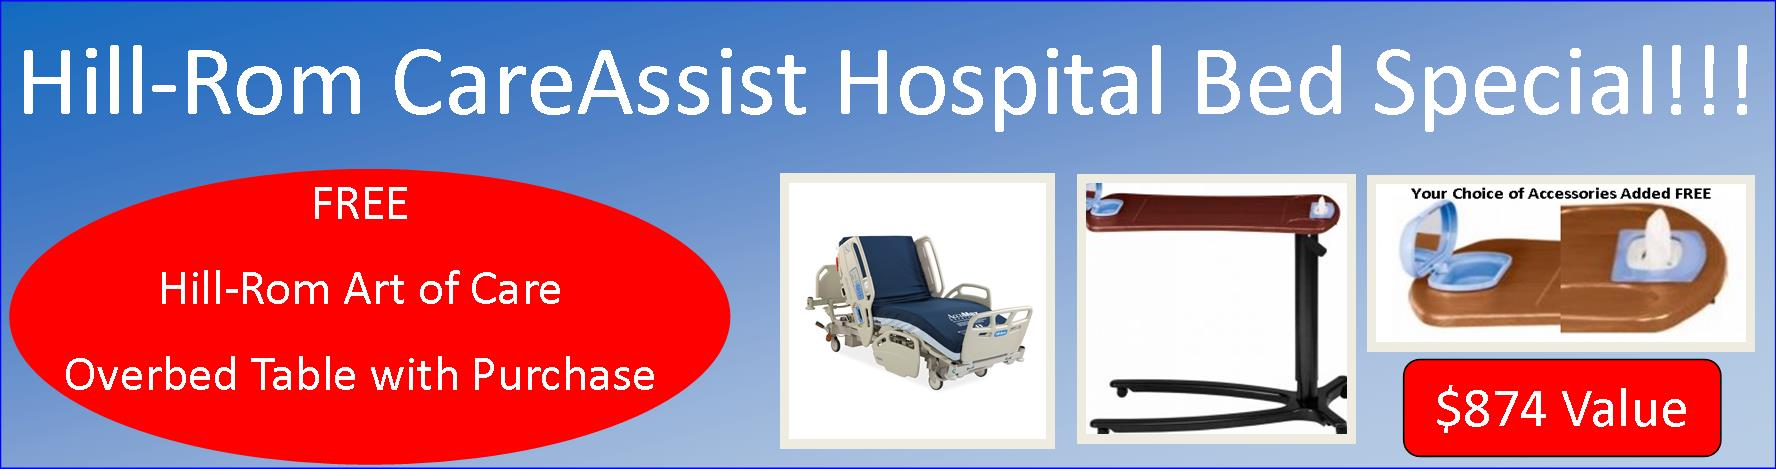 Hill-Rom Careassist special.jpg